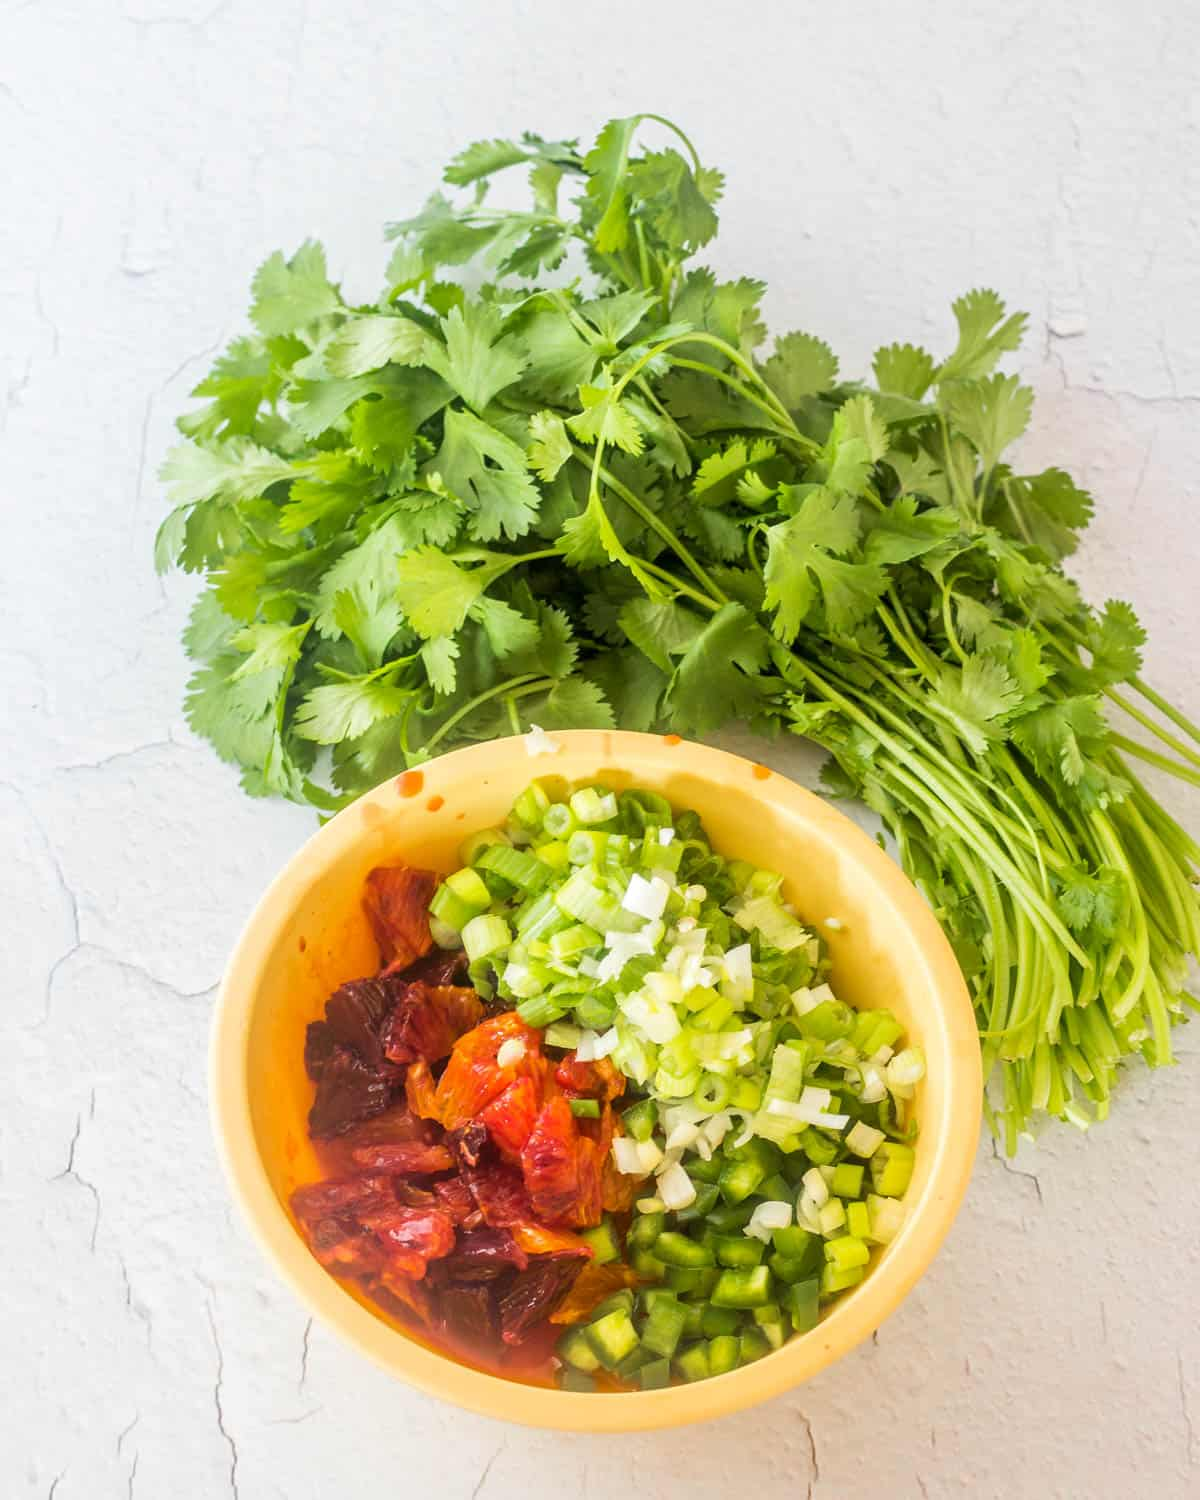 A yellow bowl of the prepared ingredients ready to finish the salsa.